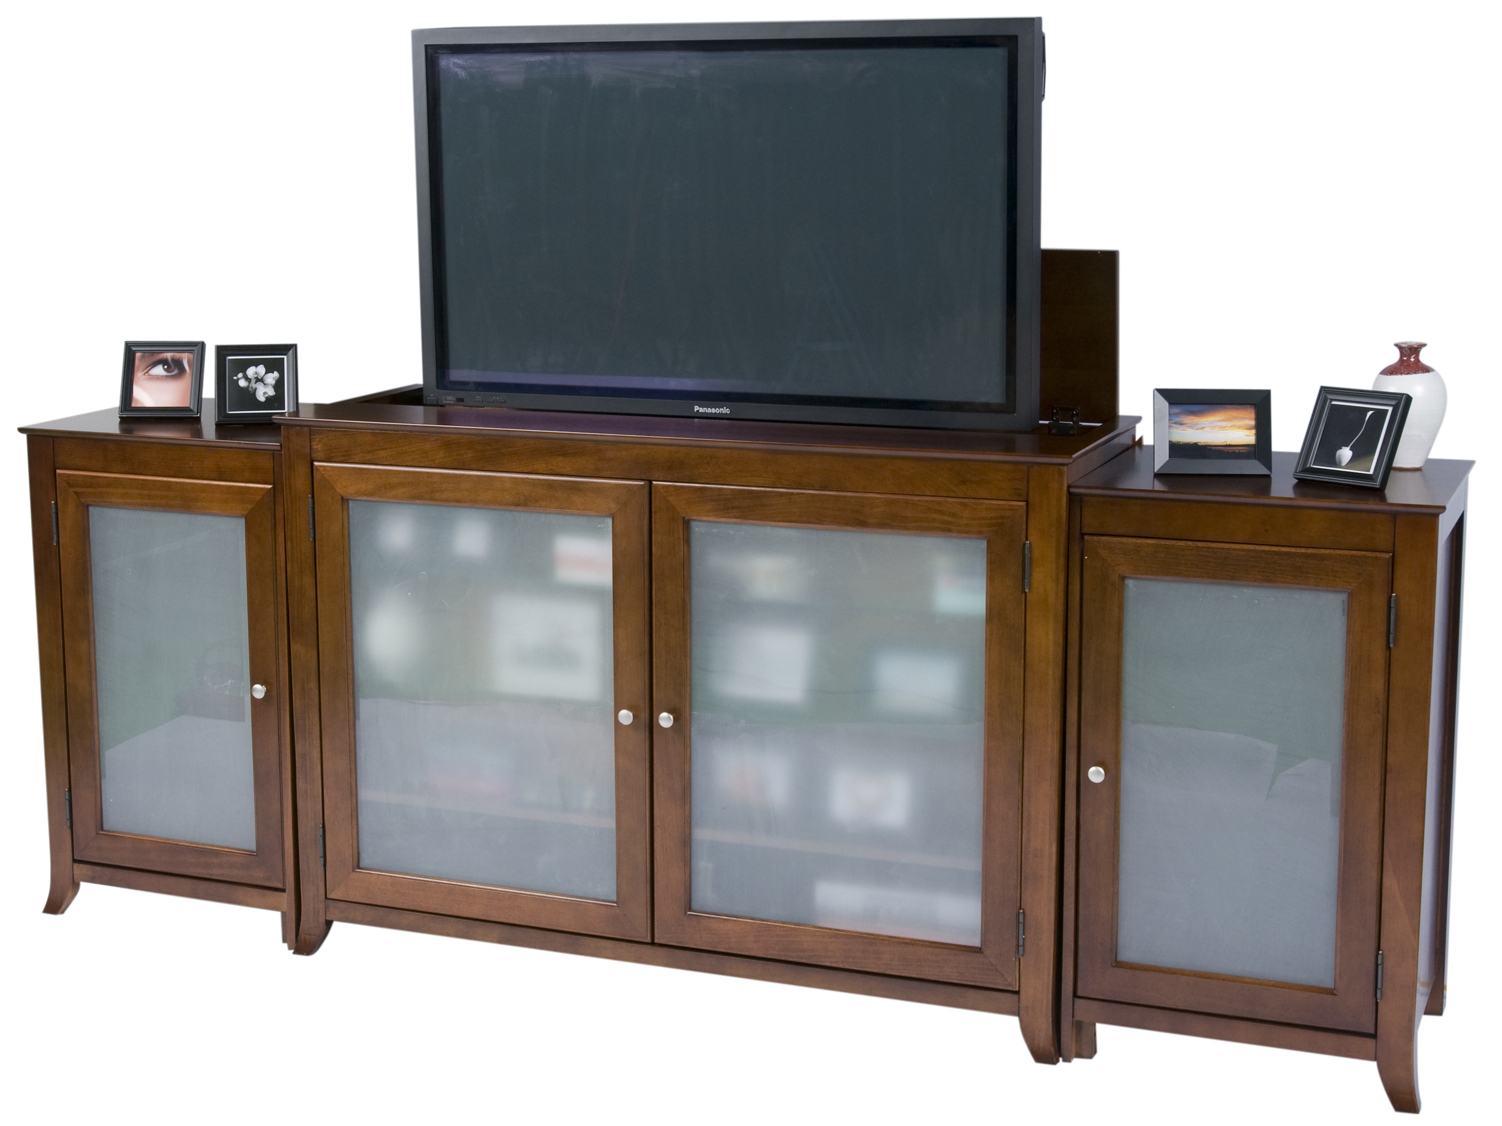 Brookside Cherry TV Lift Cabinet With Sides For Flat